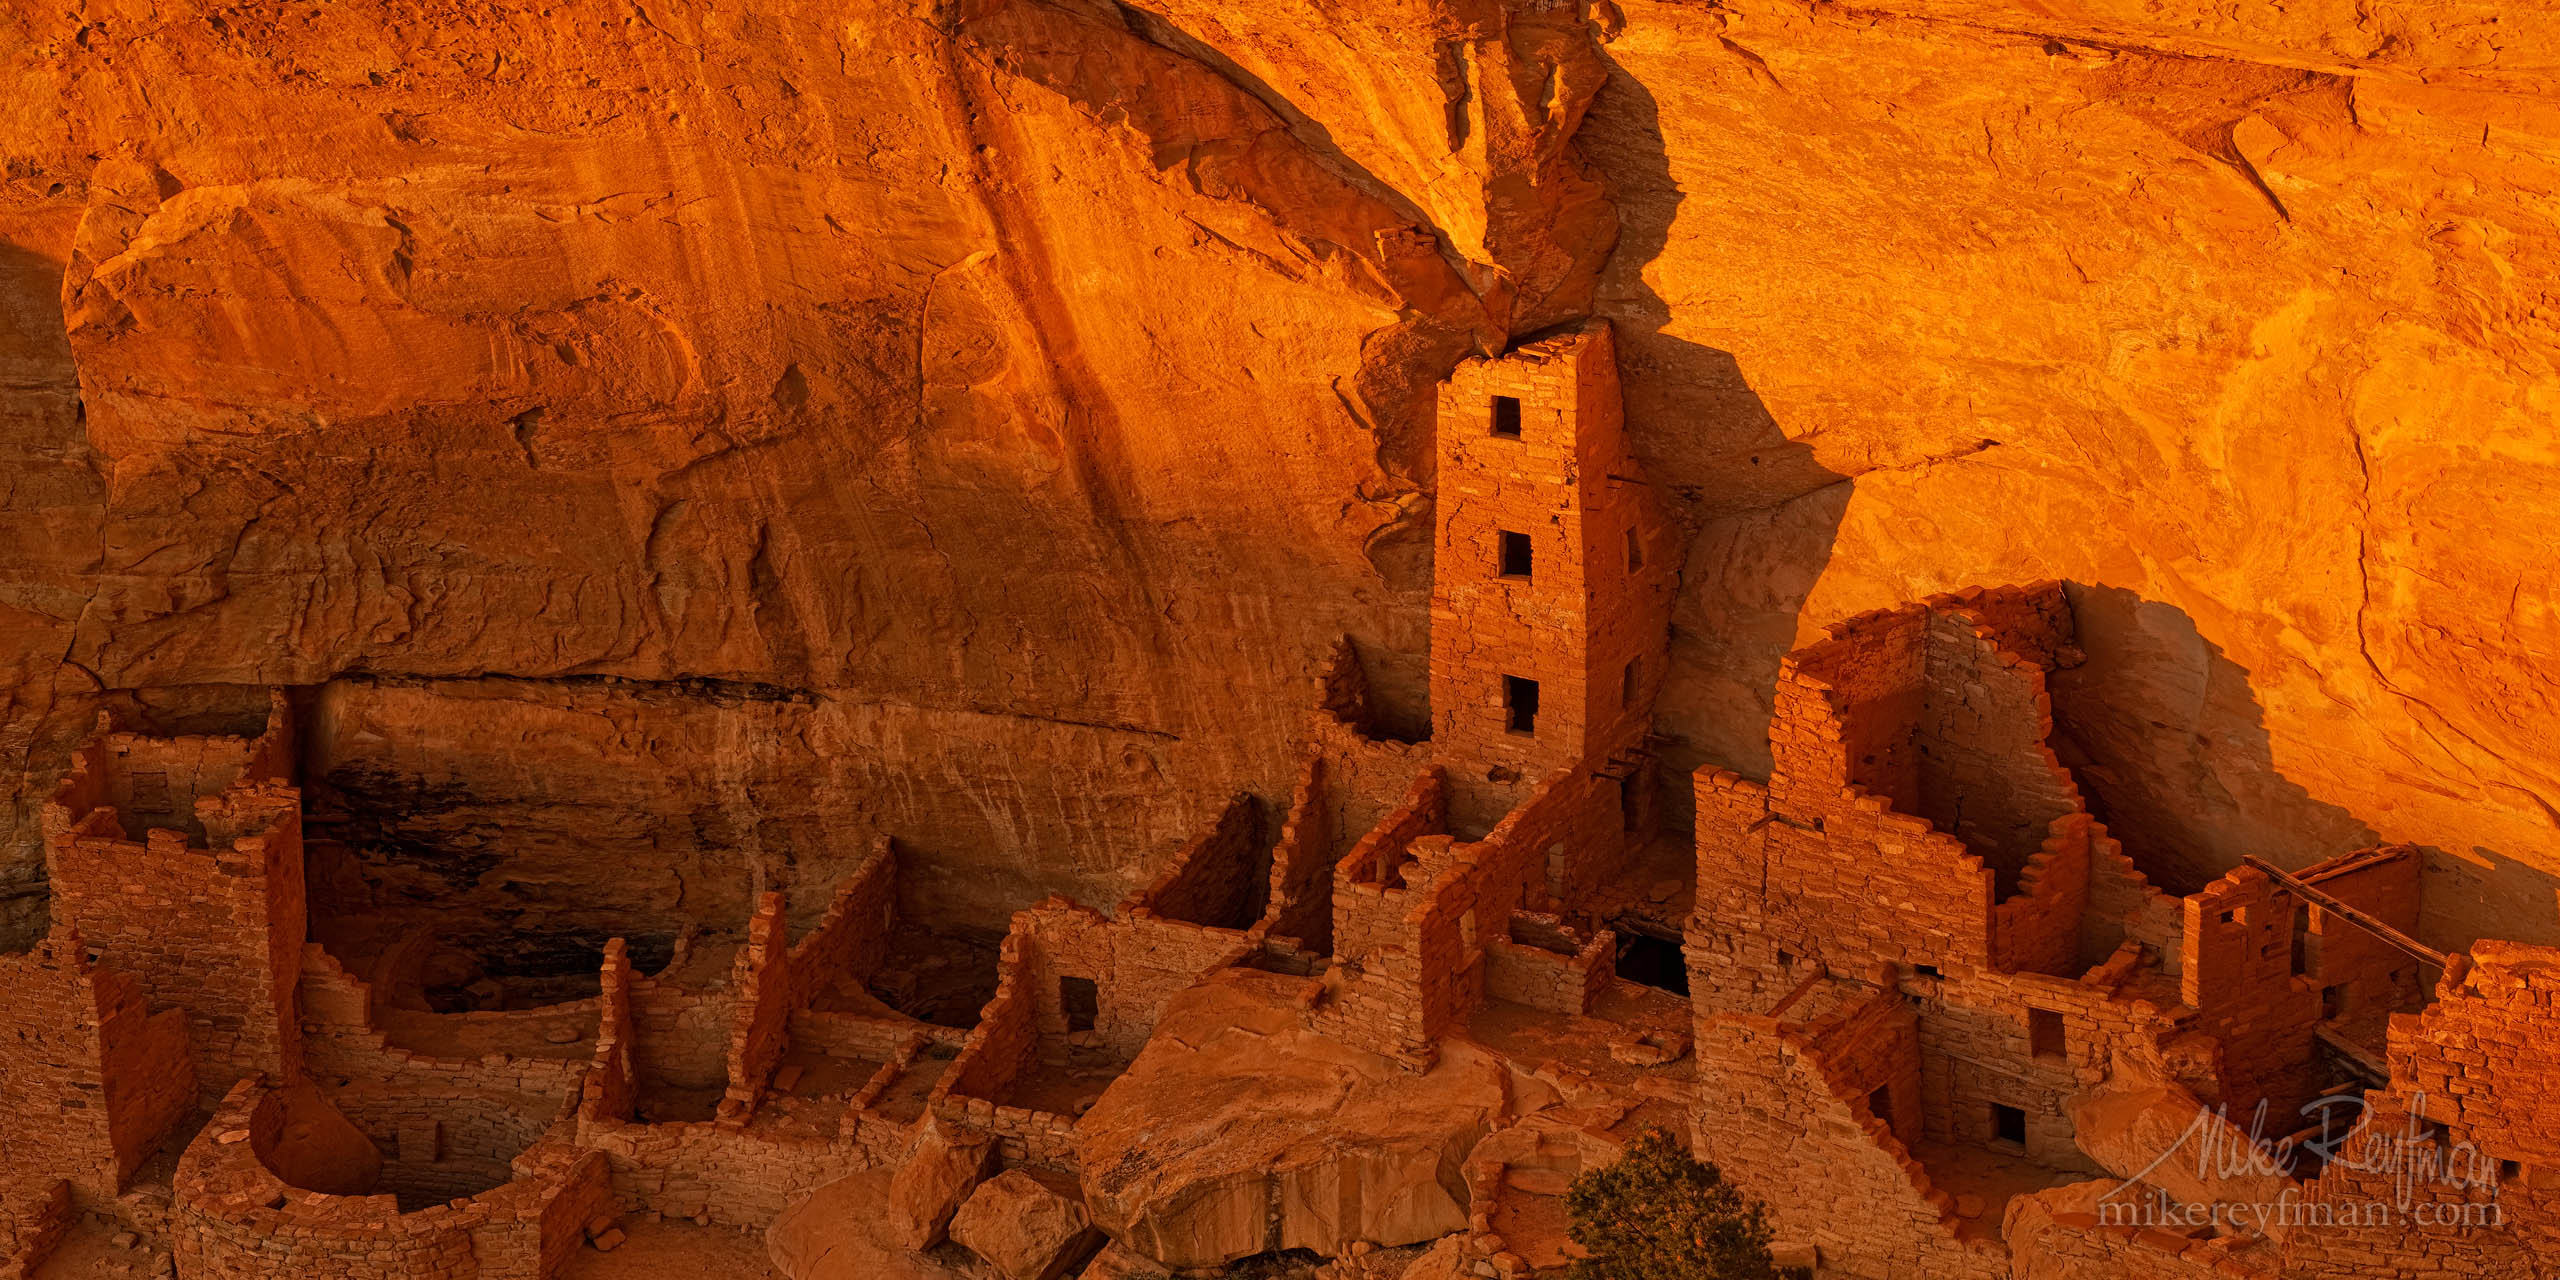 Square Tower House in warm reflected light. Mesa Verde National Park, Colorado P12-MRO3X7539 - Selected panoramic images with 2:1 aspect ratio - Mike Reyfman Photography